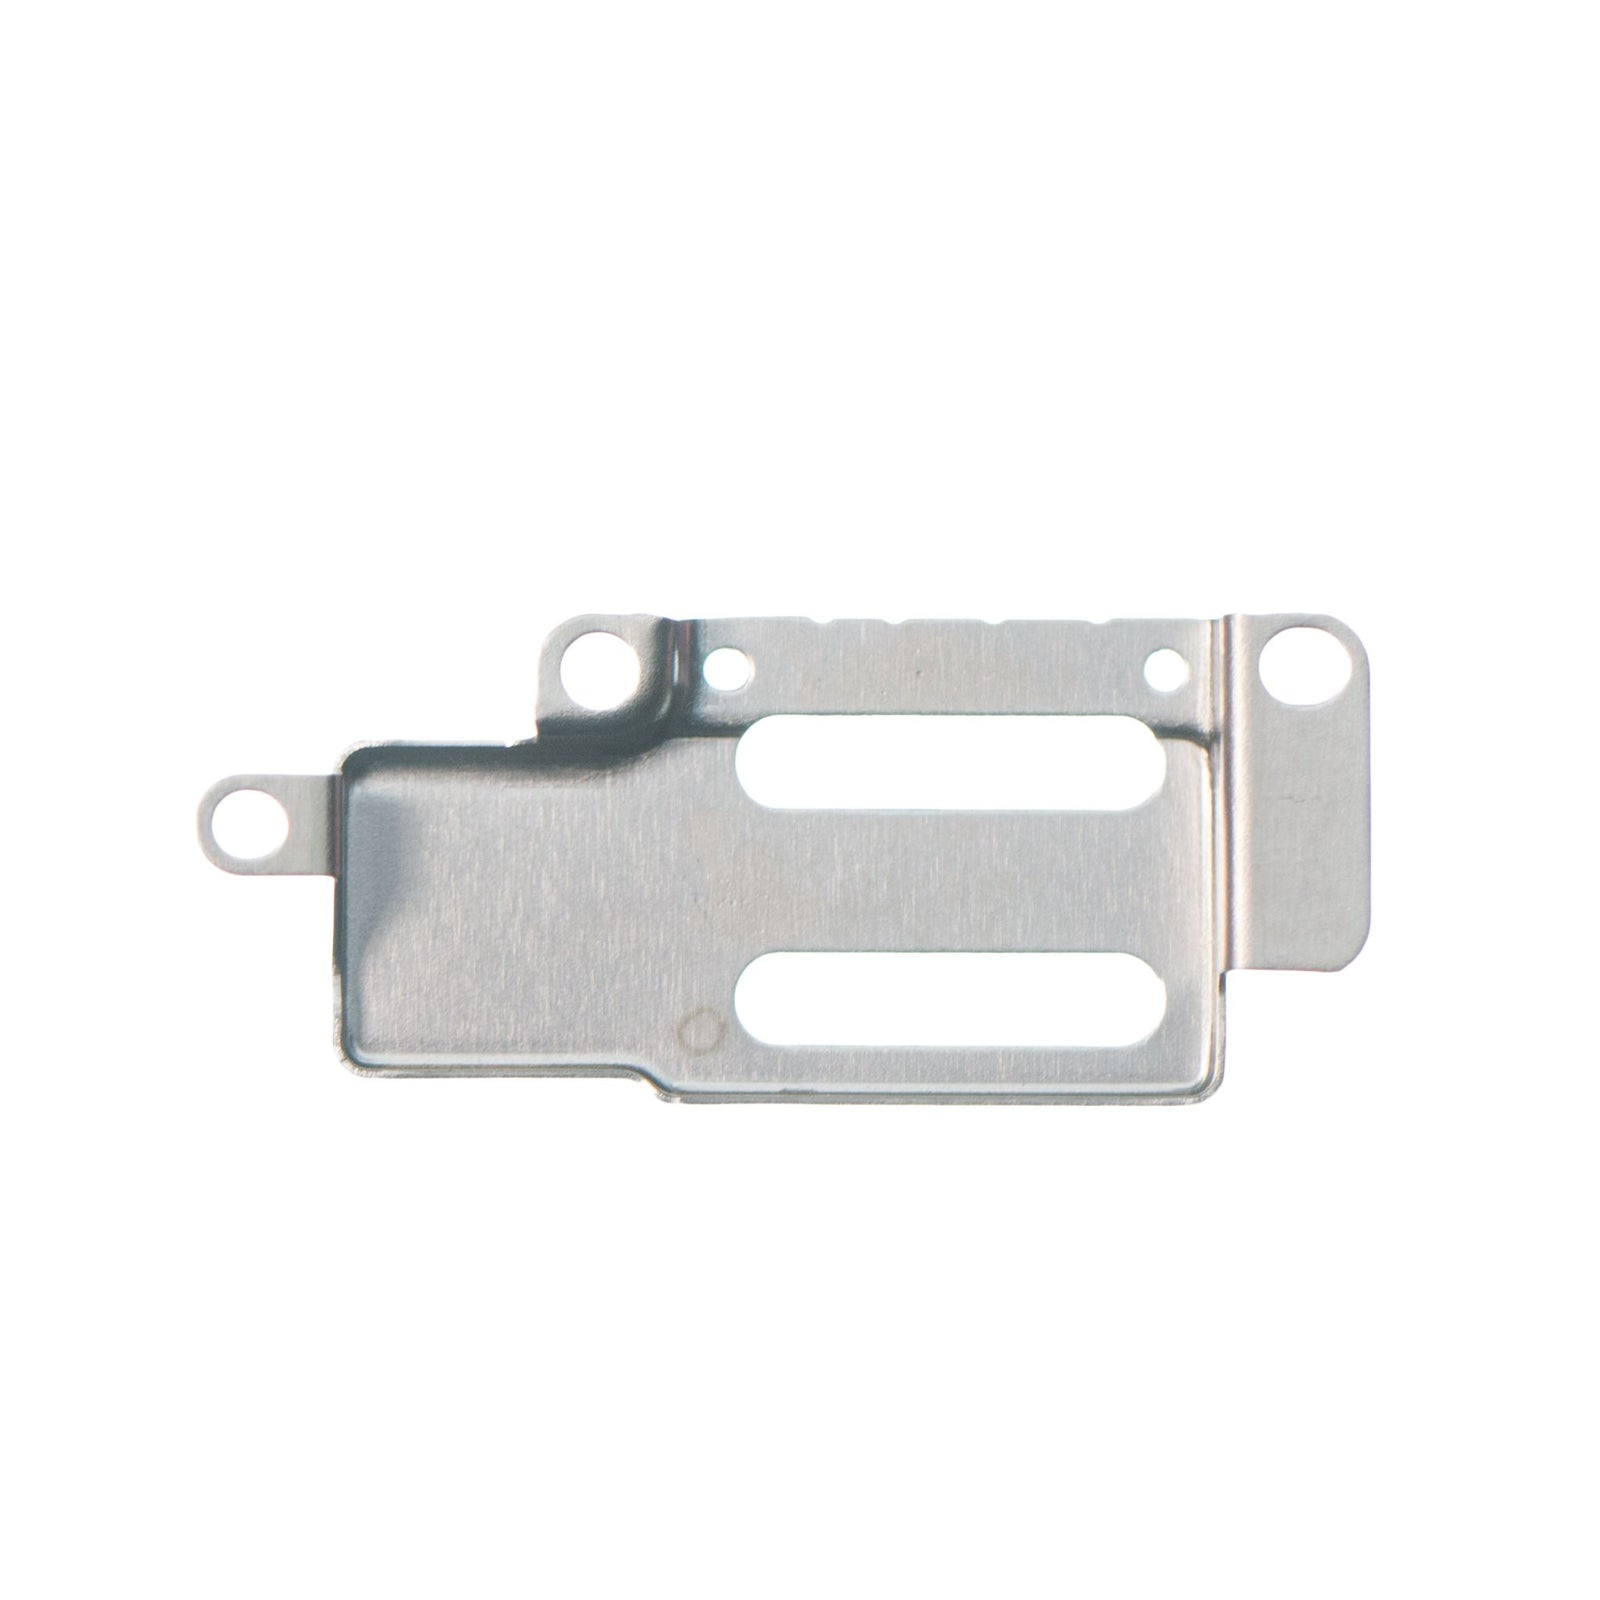 822-10098_etech_parts_wholesale_iphone_6s_front_camera_earpiece_retaining_bracket_6755-edit_RVHE4GJIBJM0.jpg